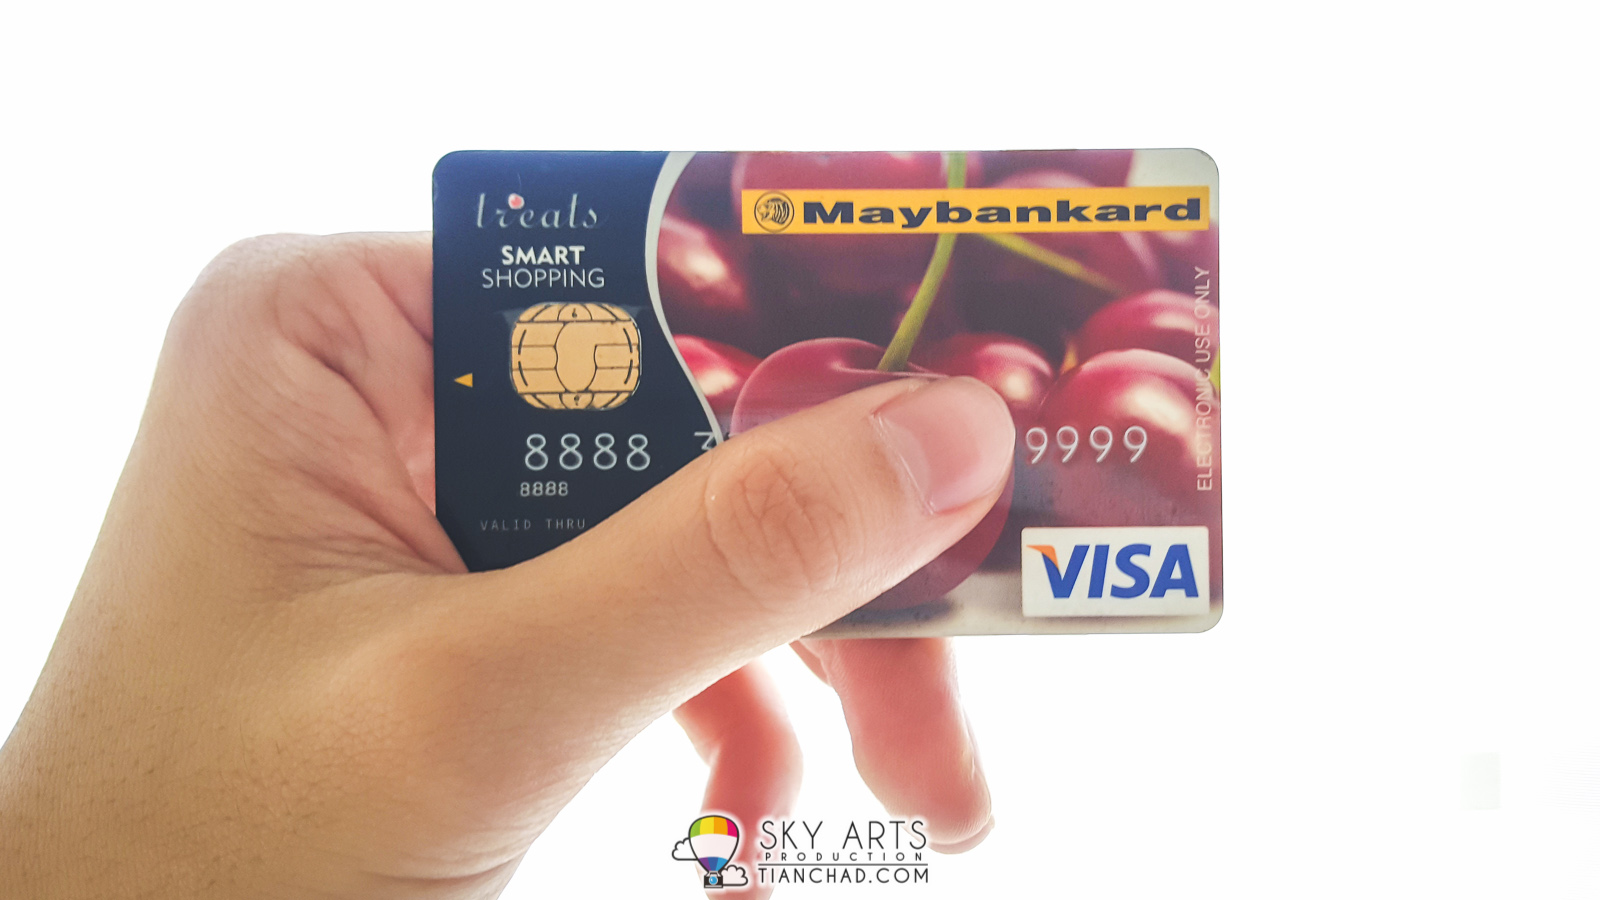 Can't Buy Apps from Google Play/iTunes using Maybank Debit Card